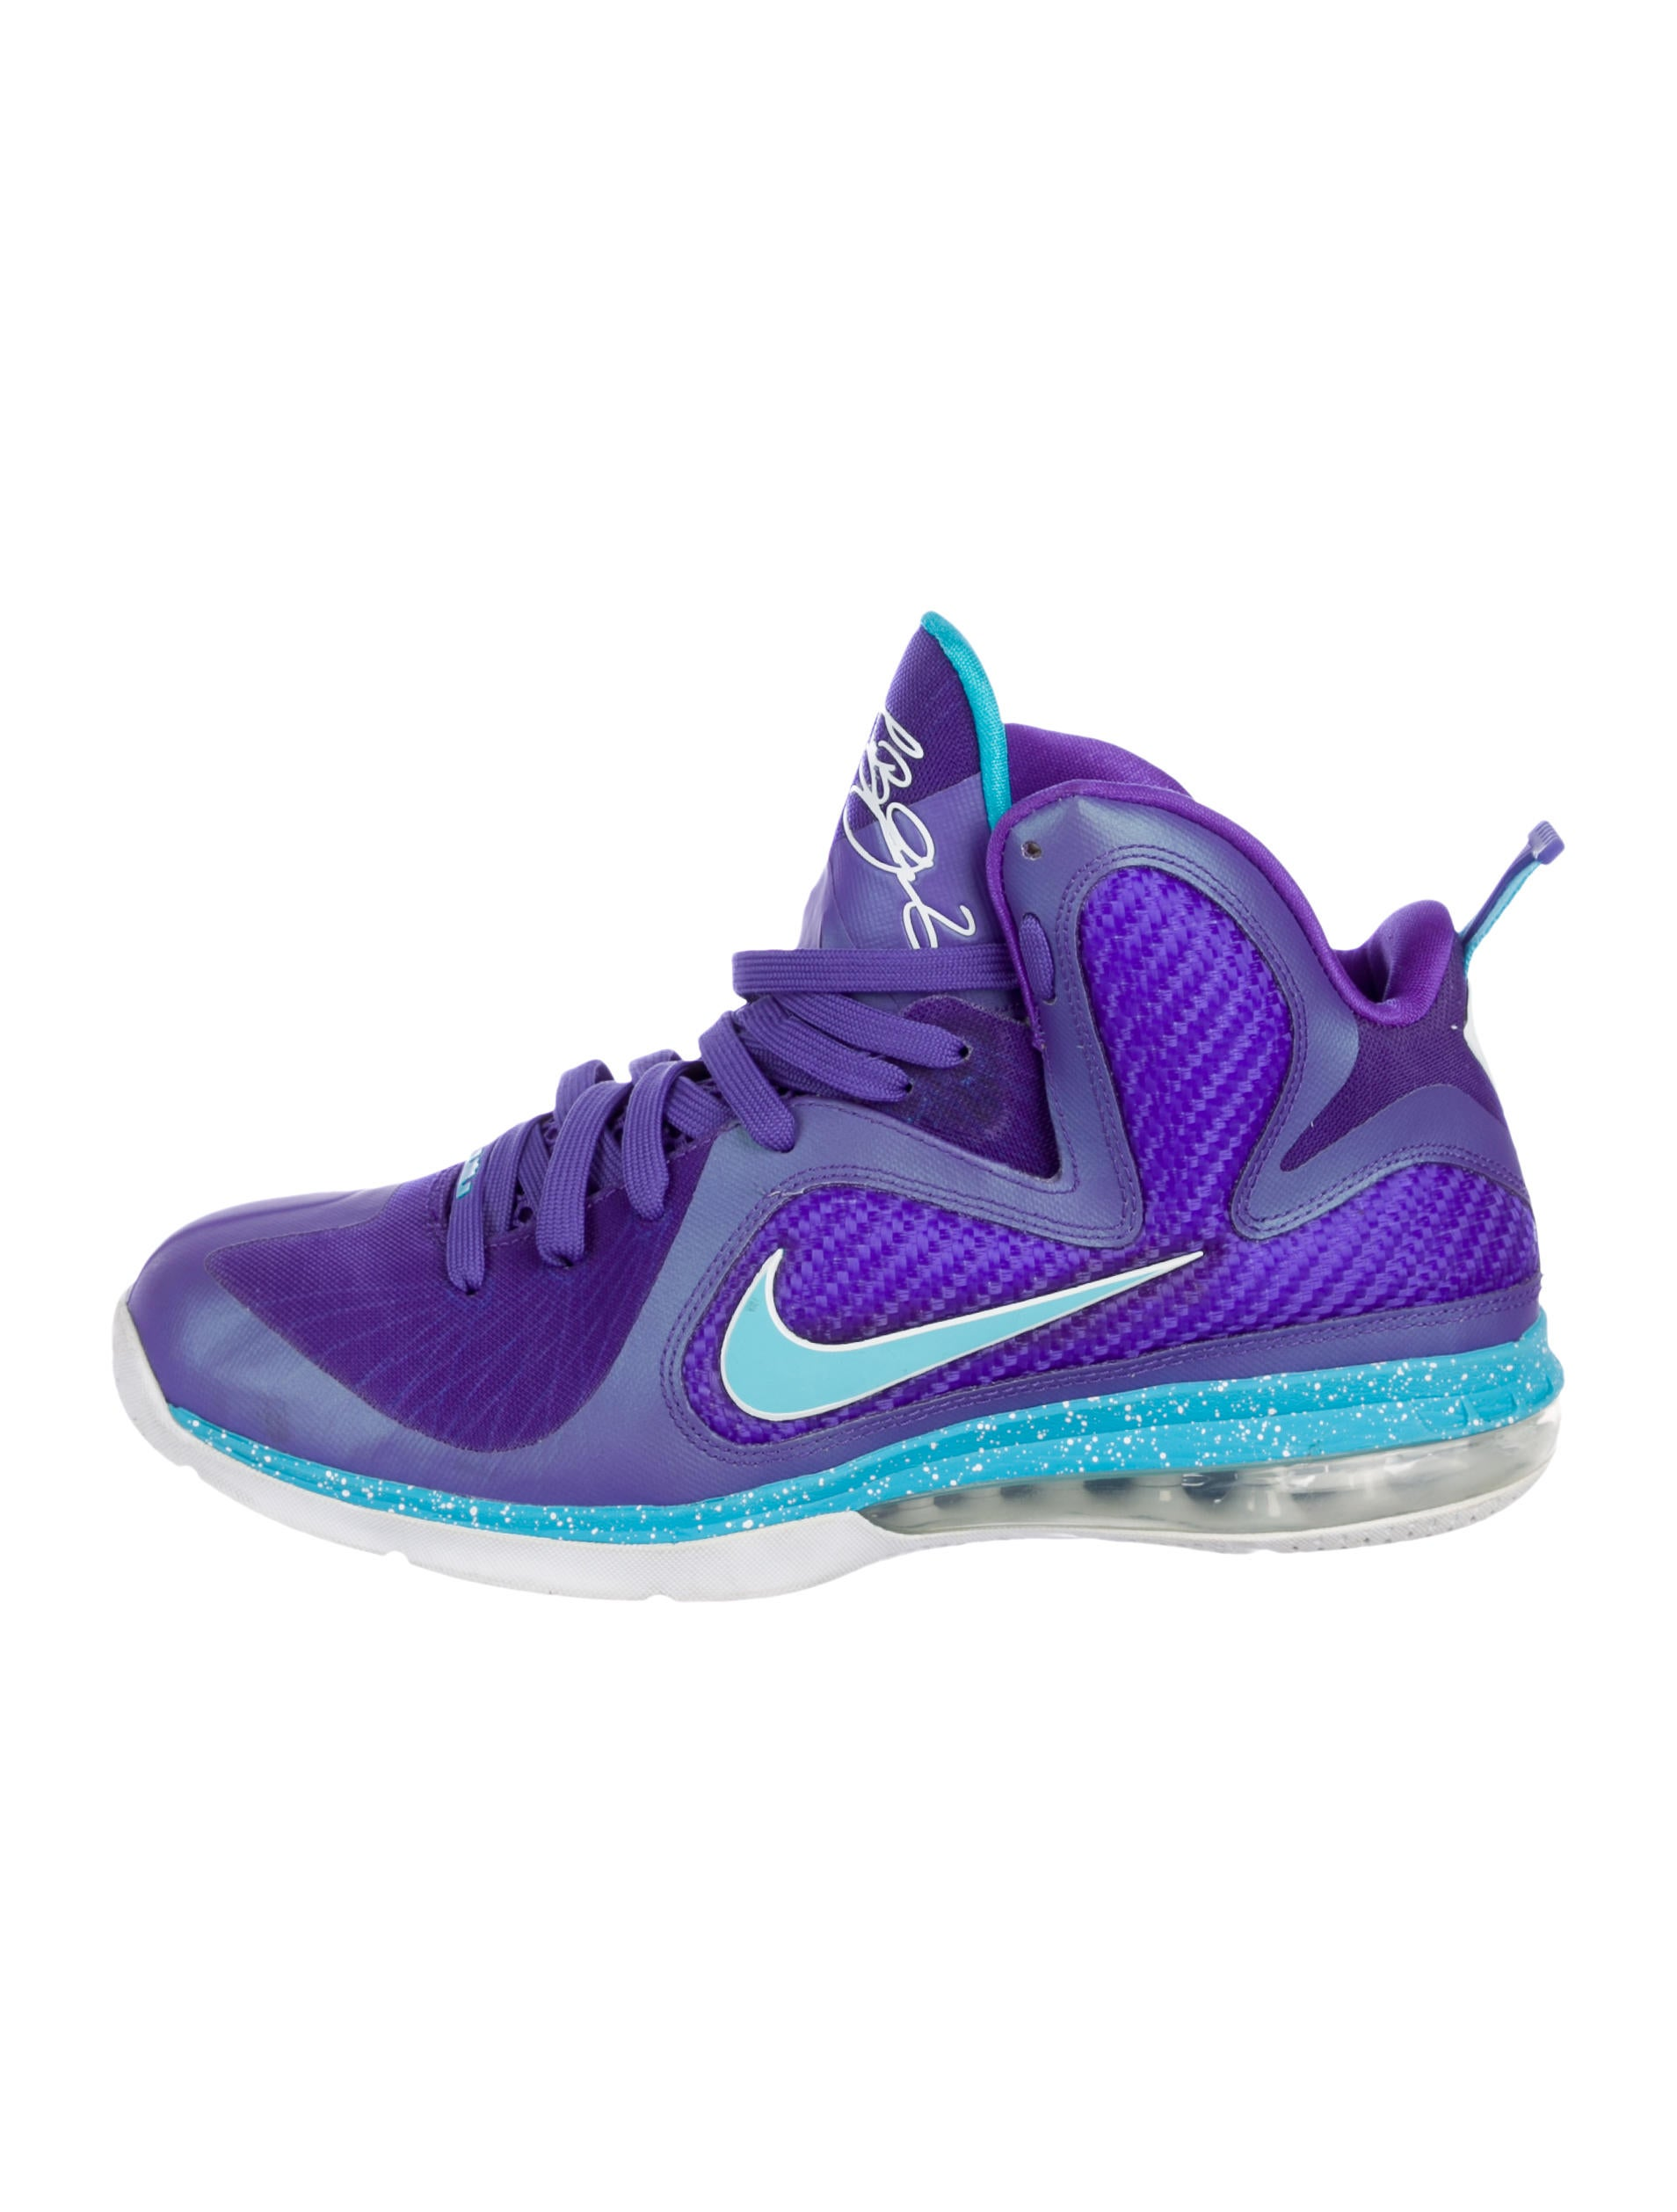 6658f6ea41dd Nike LeBron 9 Summit Lake Hornets Sneakers - Shoes - WU231391